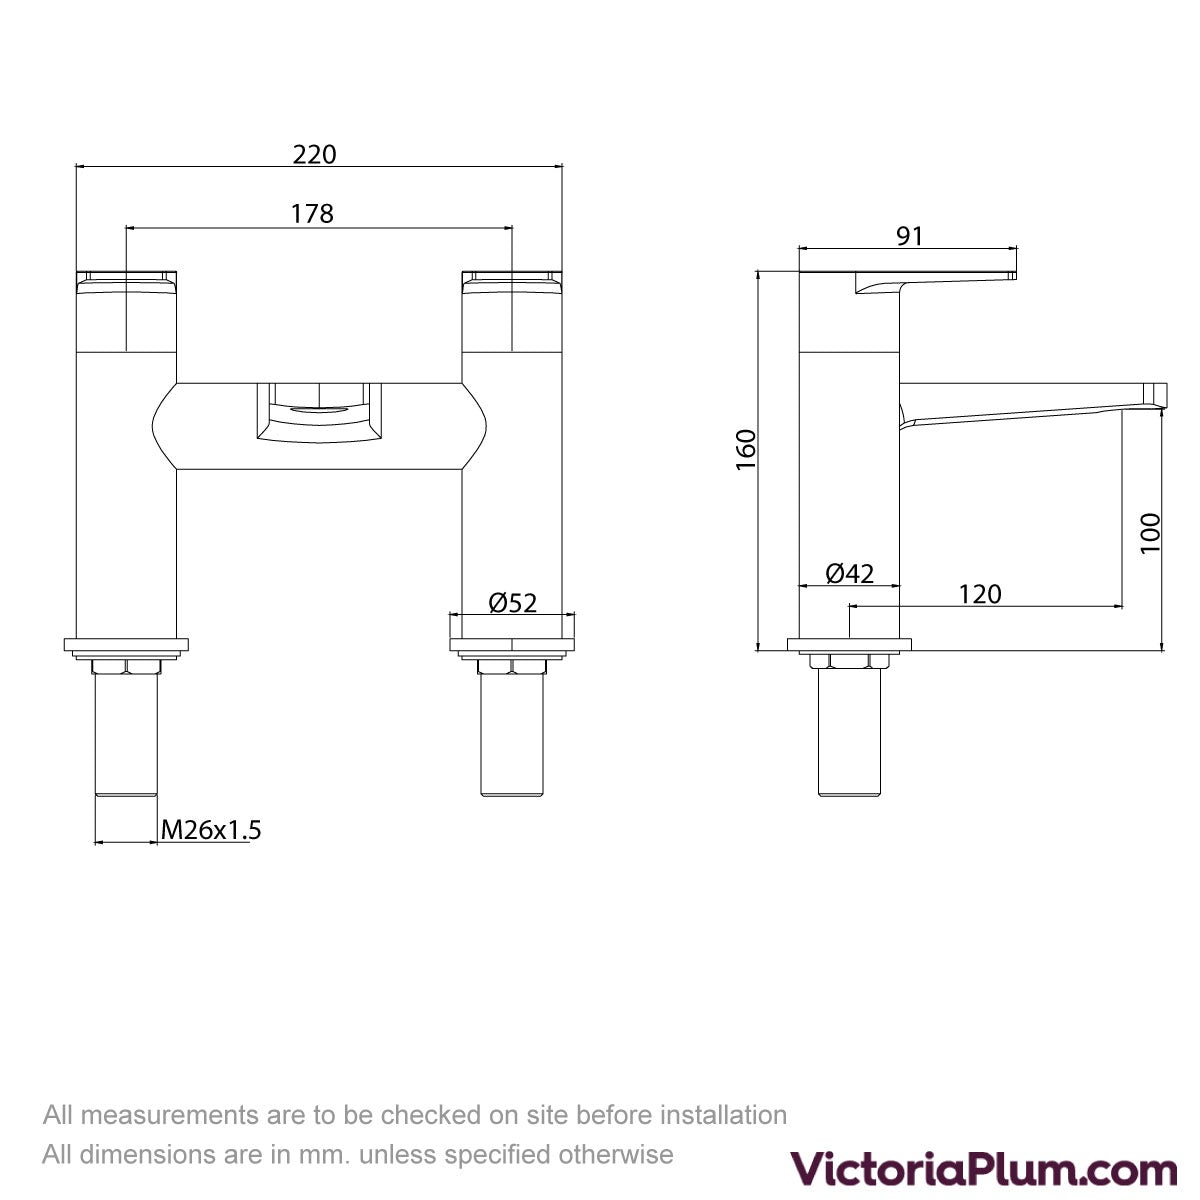 Dimensions for Kirke Combo bath mixer tap